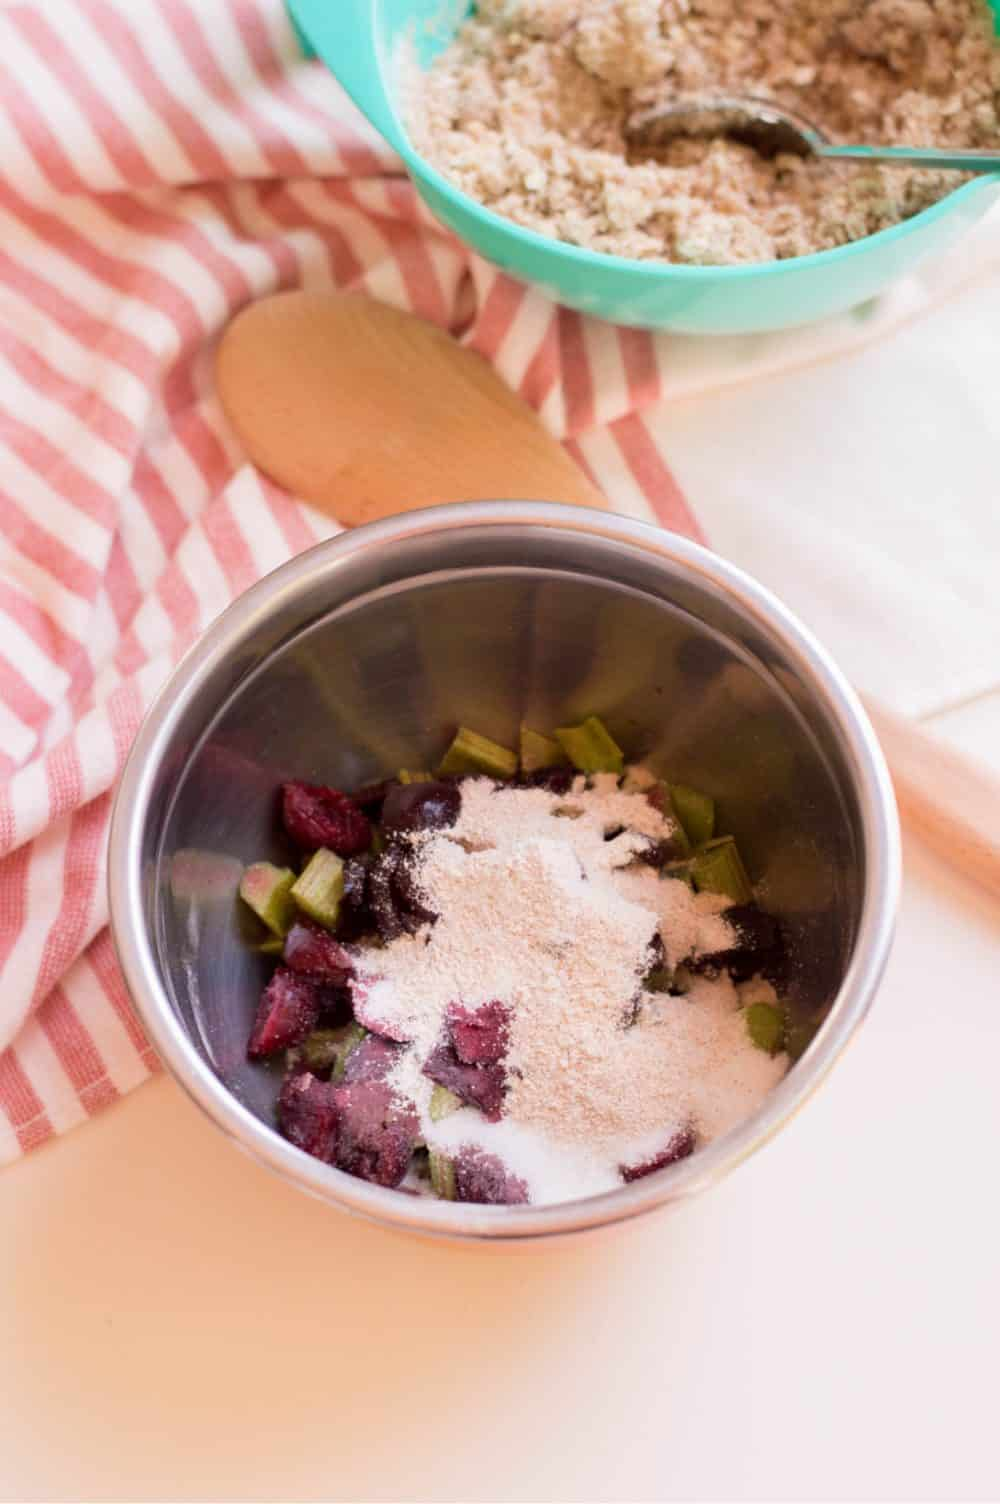 toss cherries and rhubarb with sugar and flour